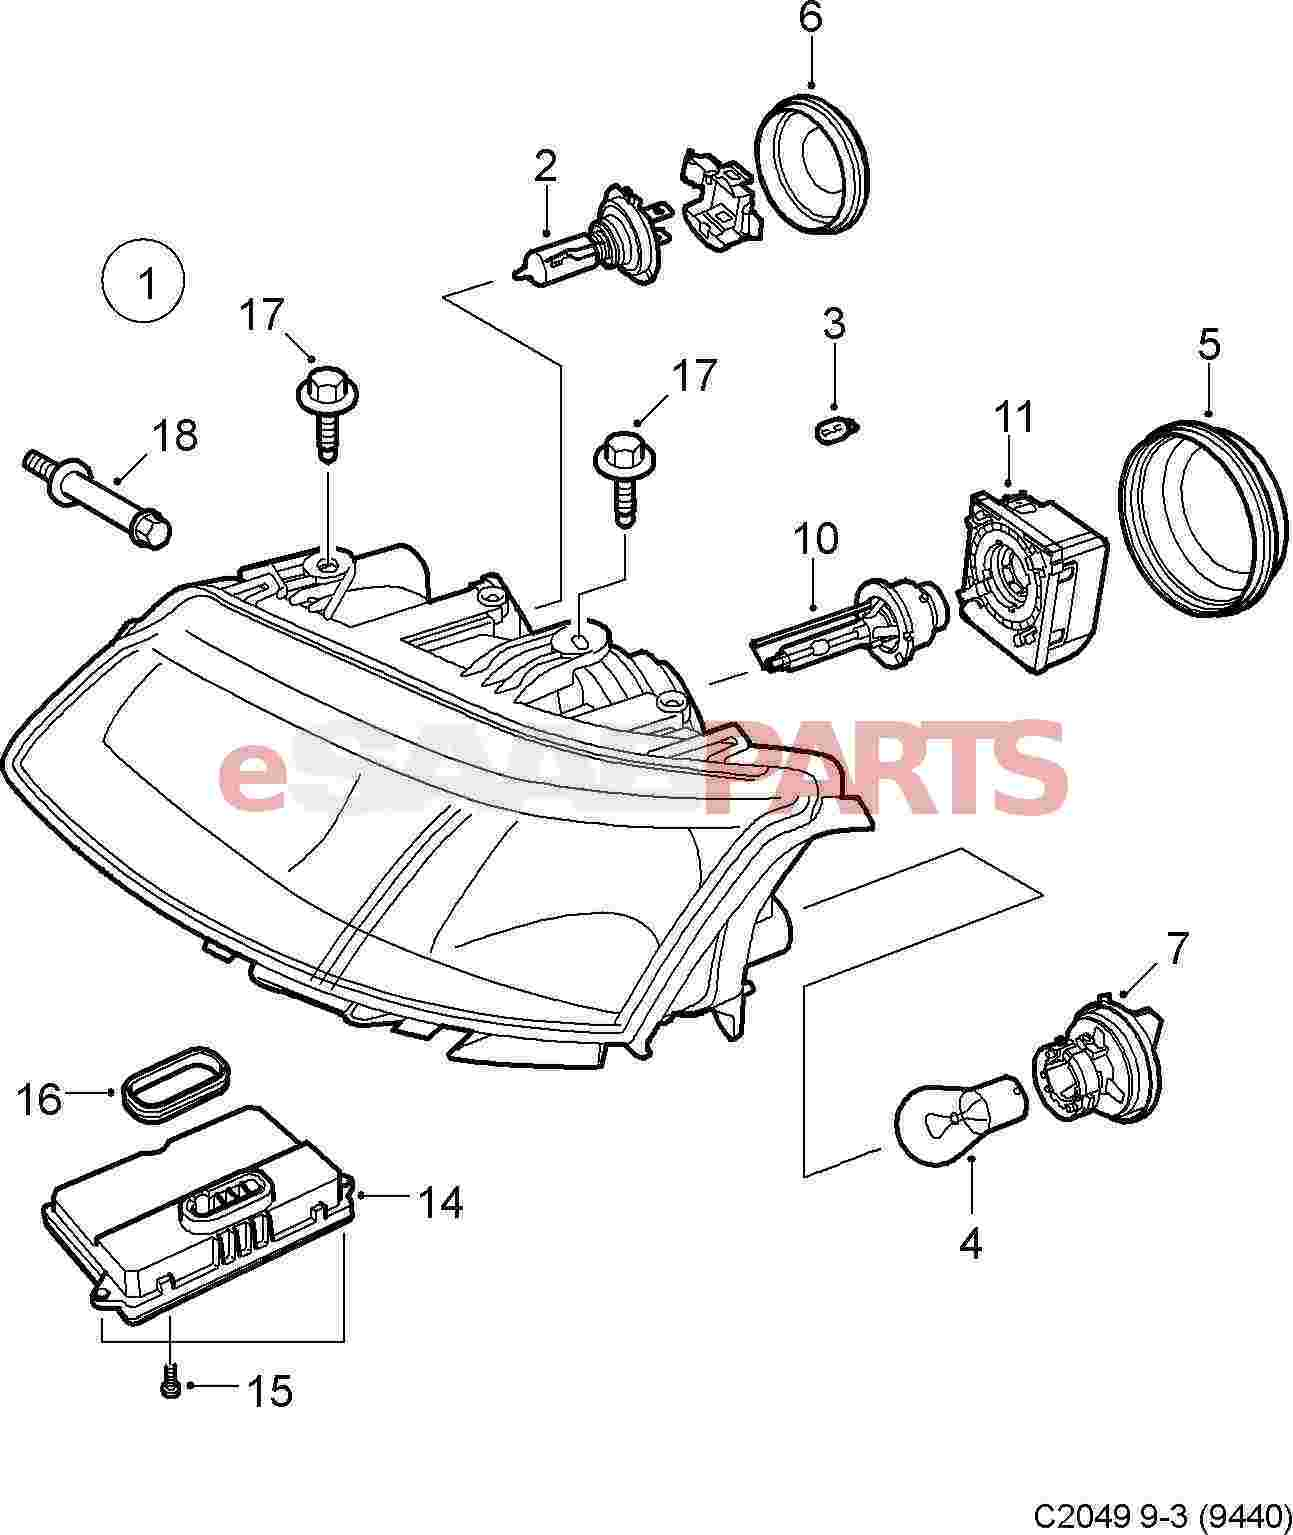 hight resolution of 2003 volvo s40 fuse diagram images gallery